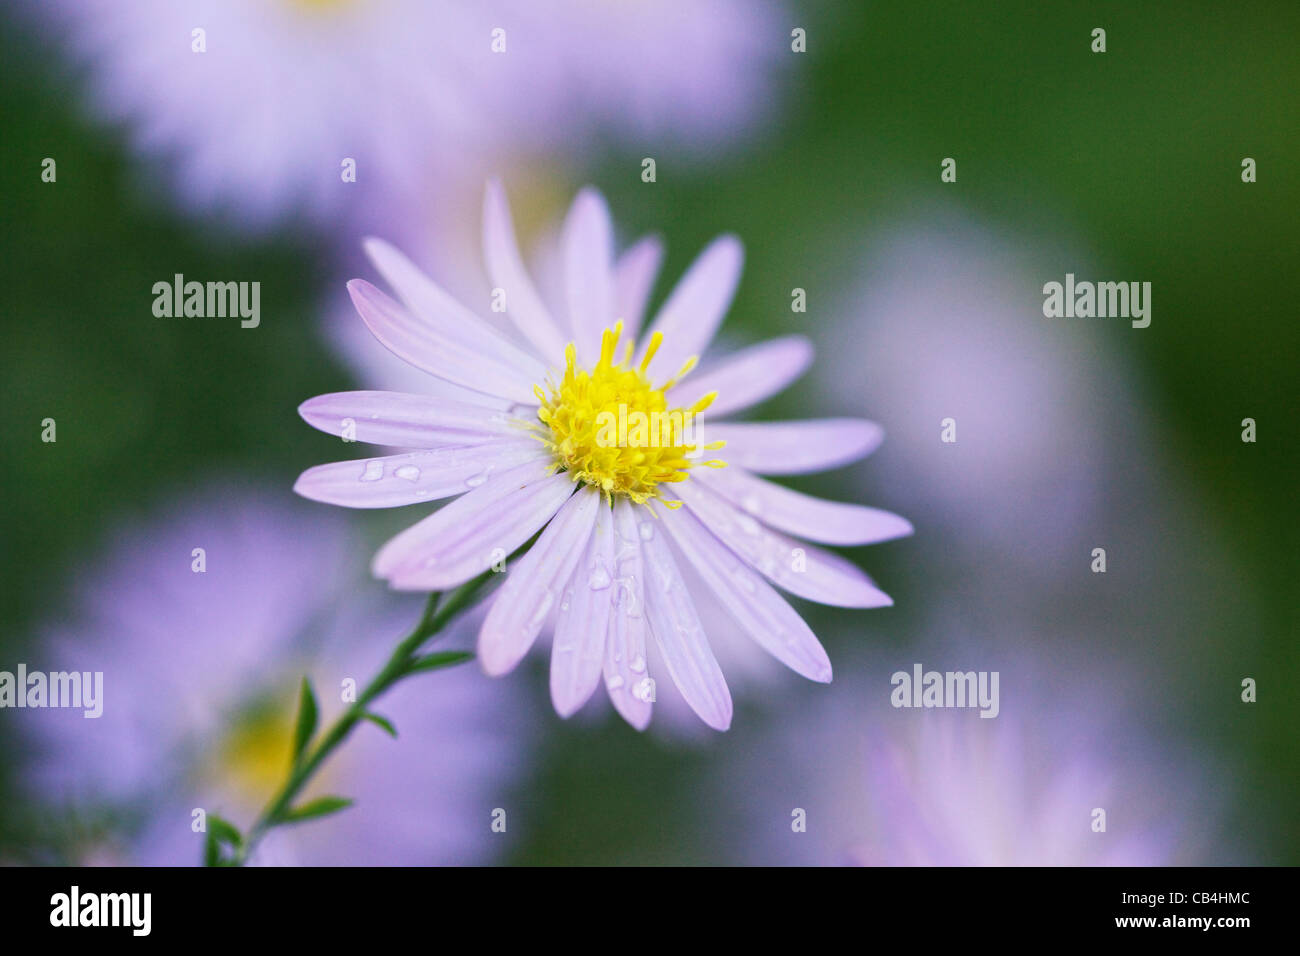 Blue Aster Flower Stock Photos Blue Aster Flower Stock Images Alamy